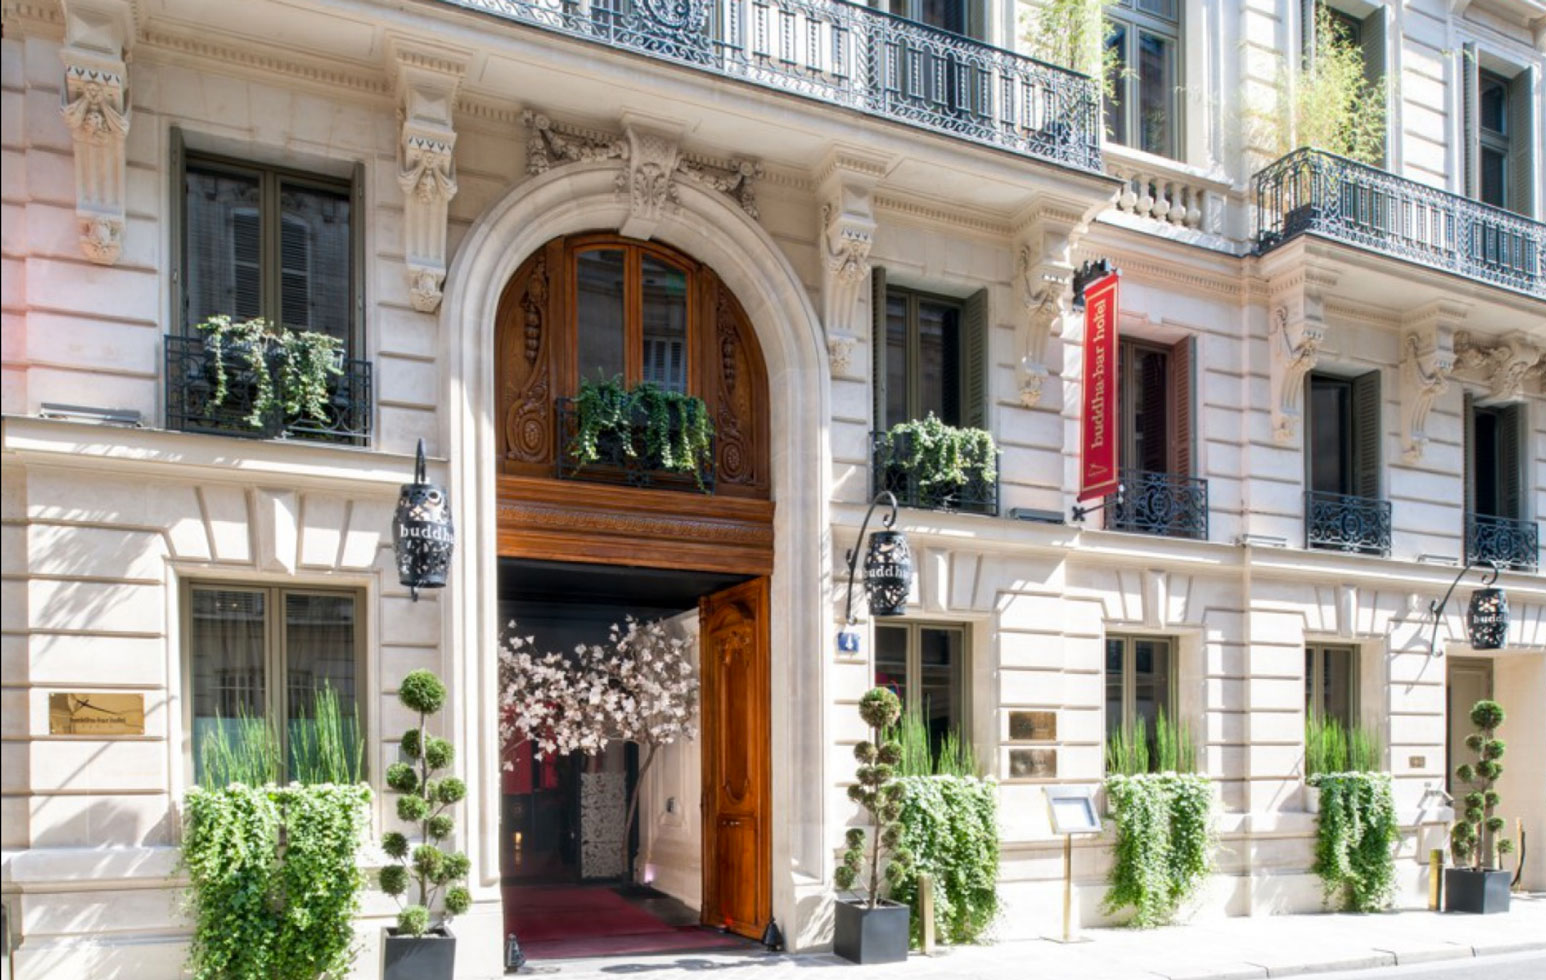 Luxury hotels: Buddha-Bar Hotel Paris